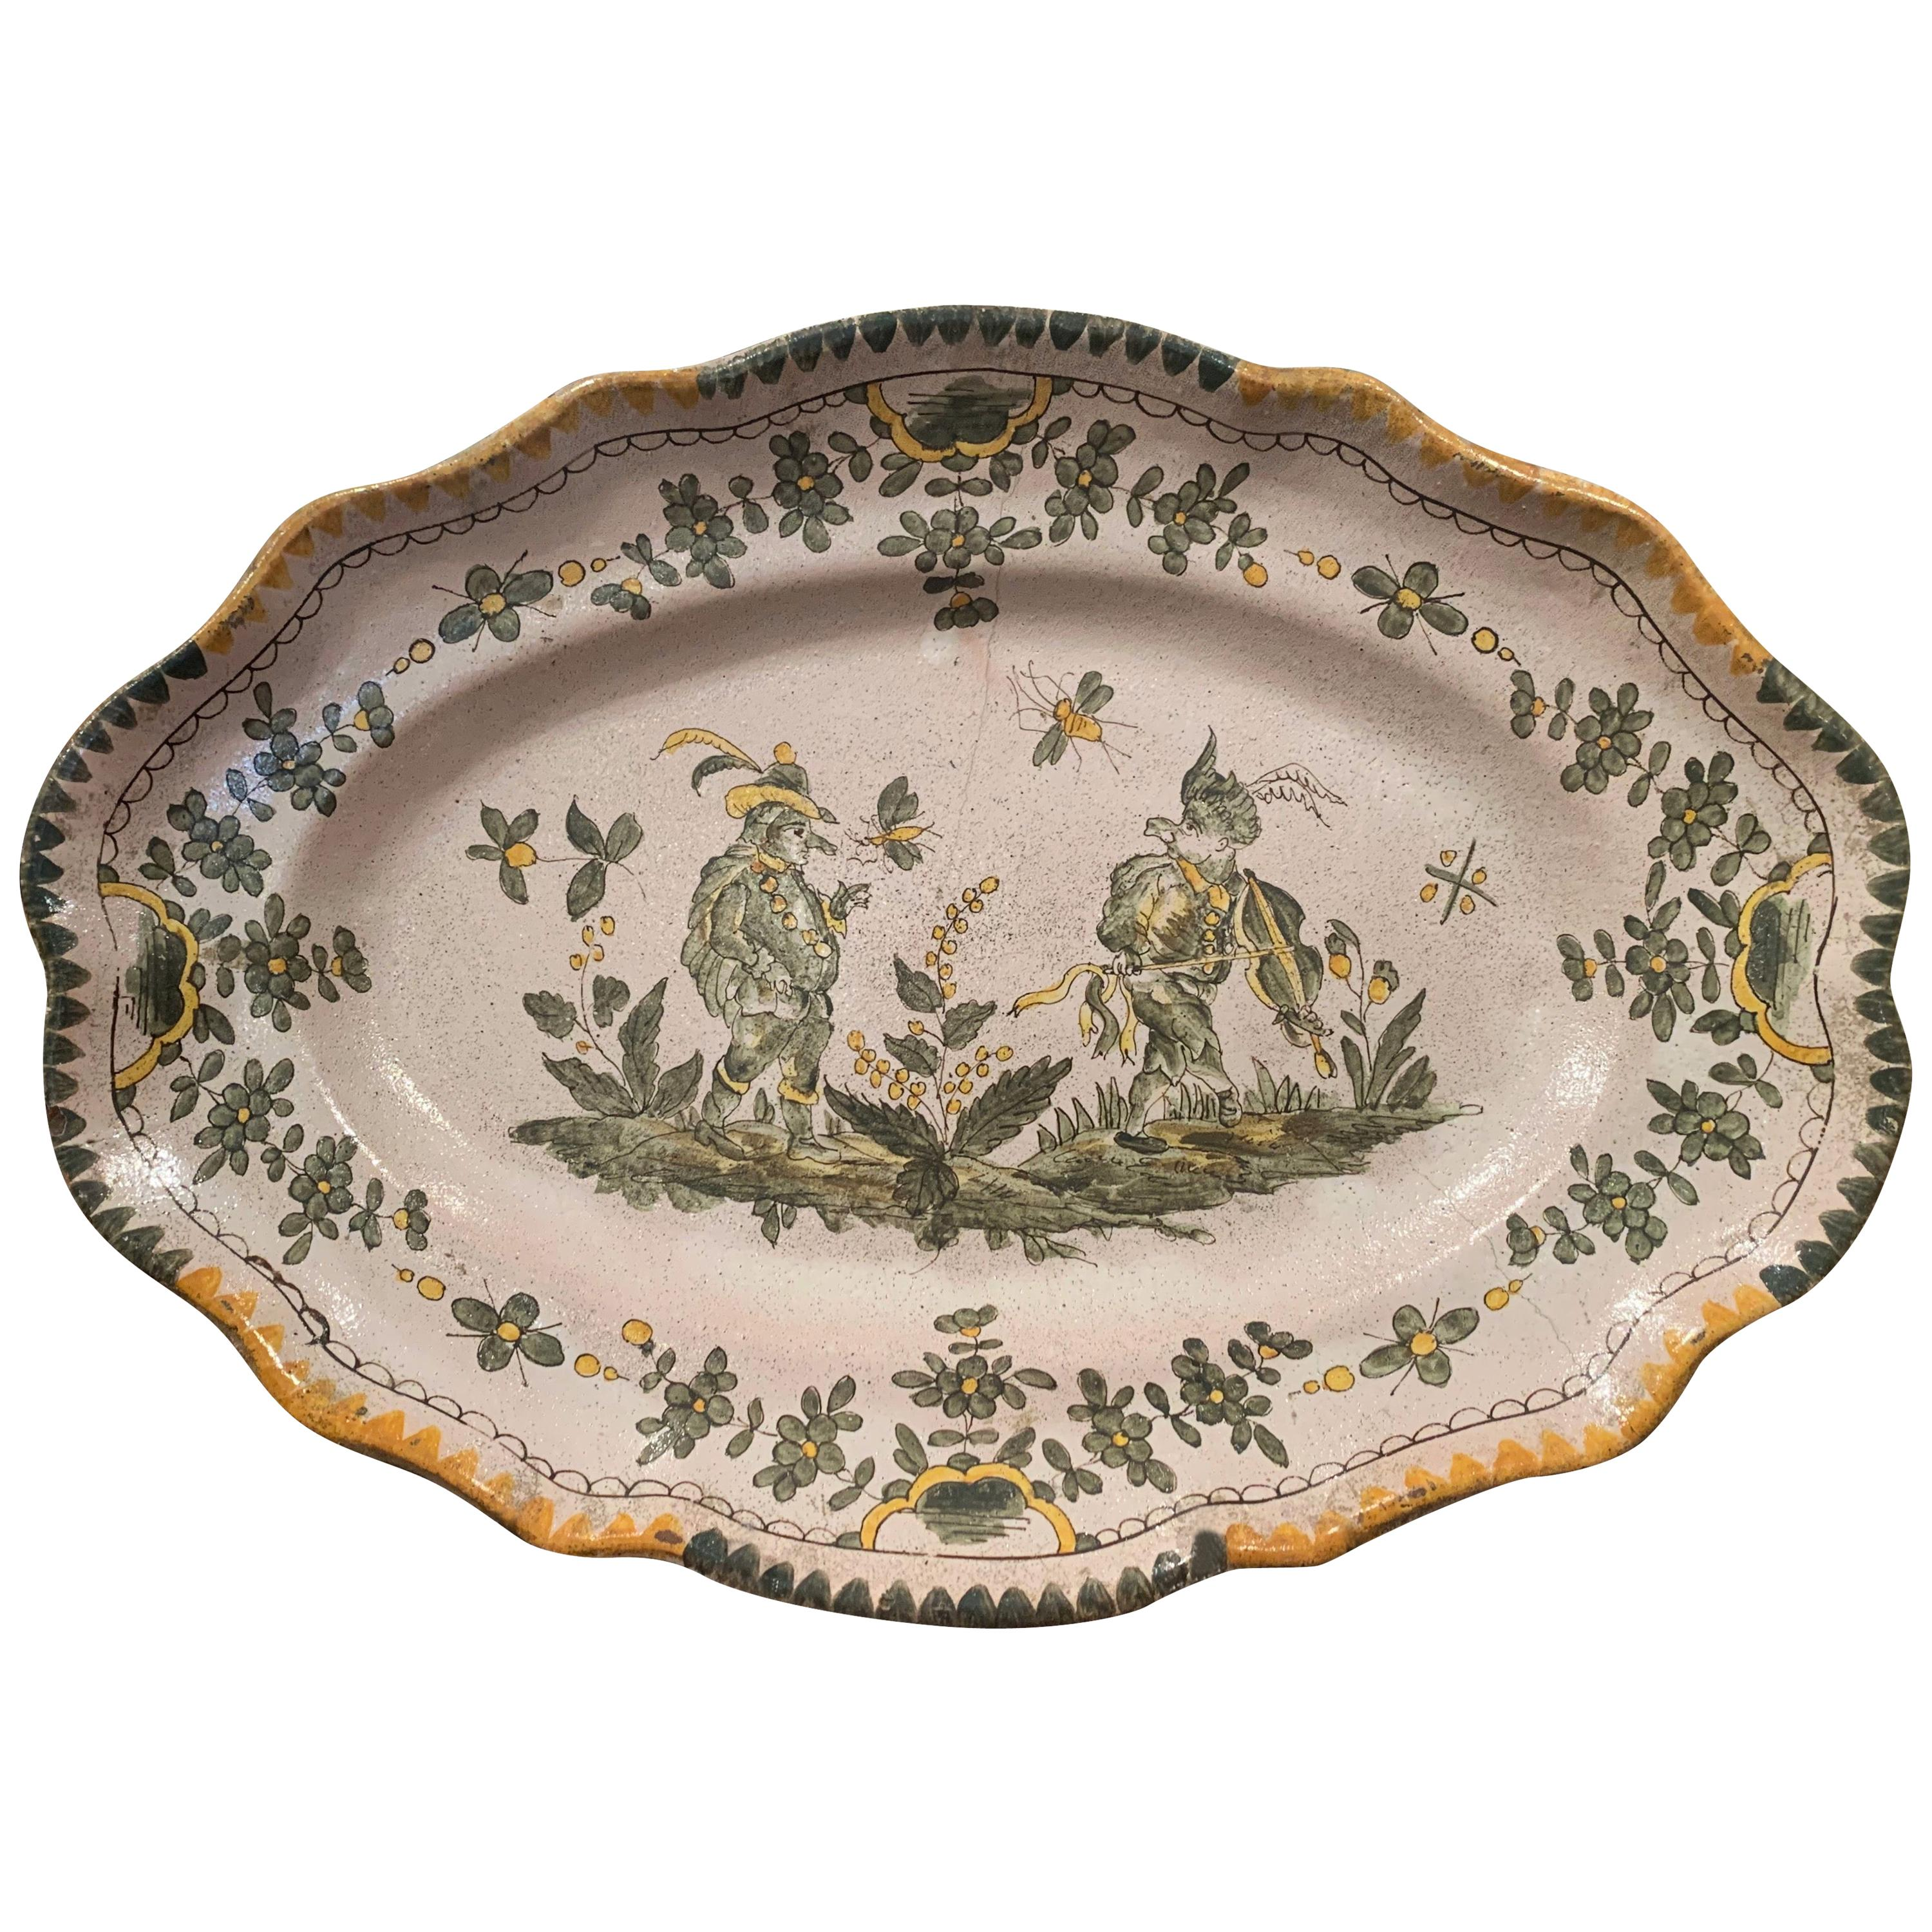 18th Century French Hand Painted Ceramic Wall Platter from Moustiers